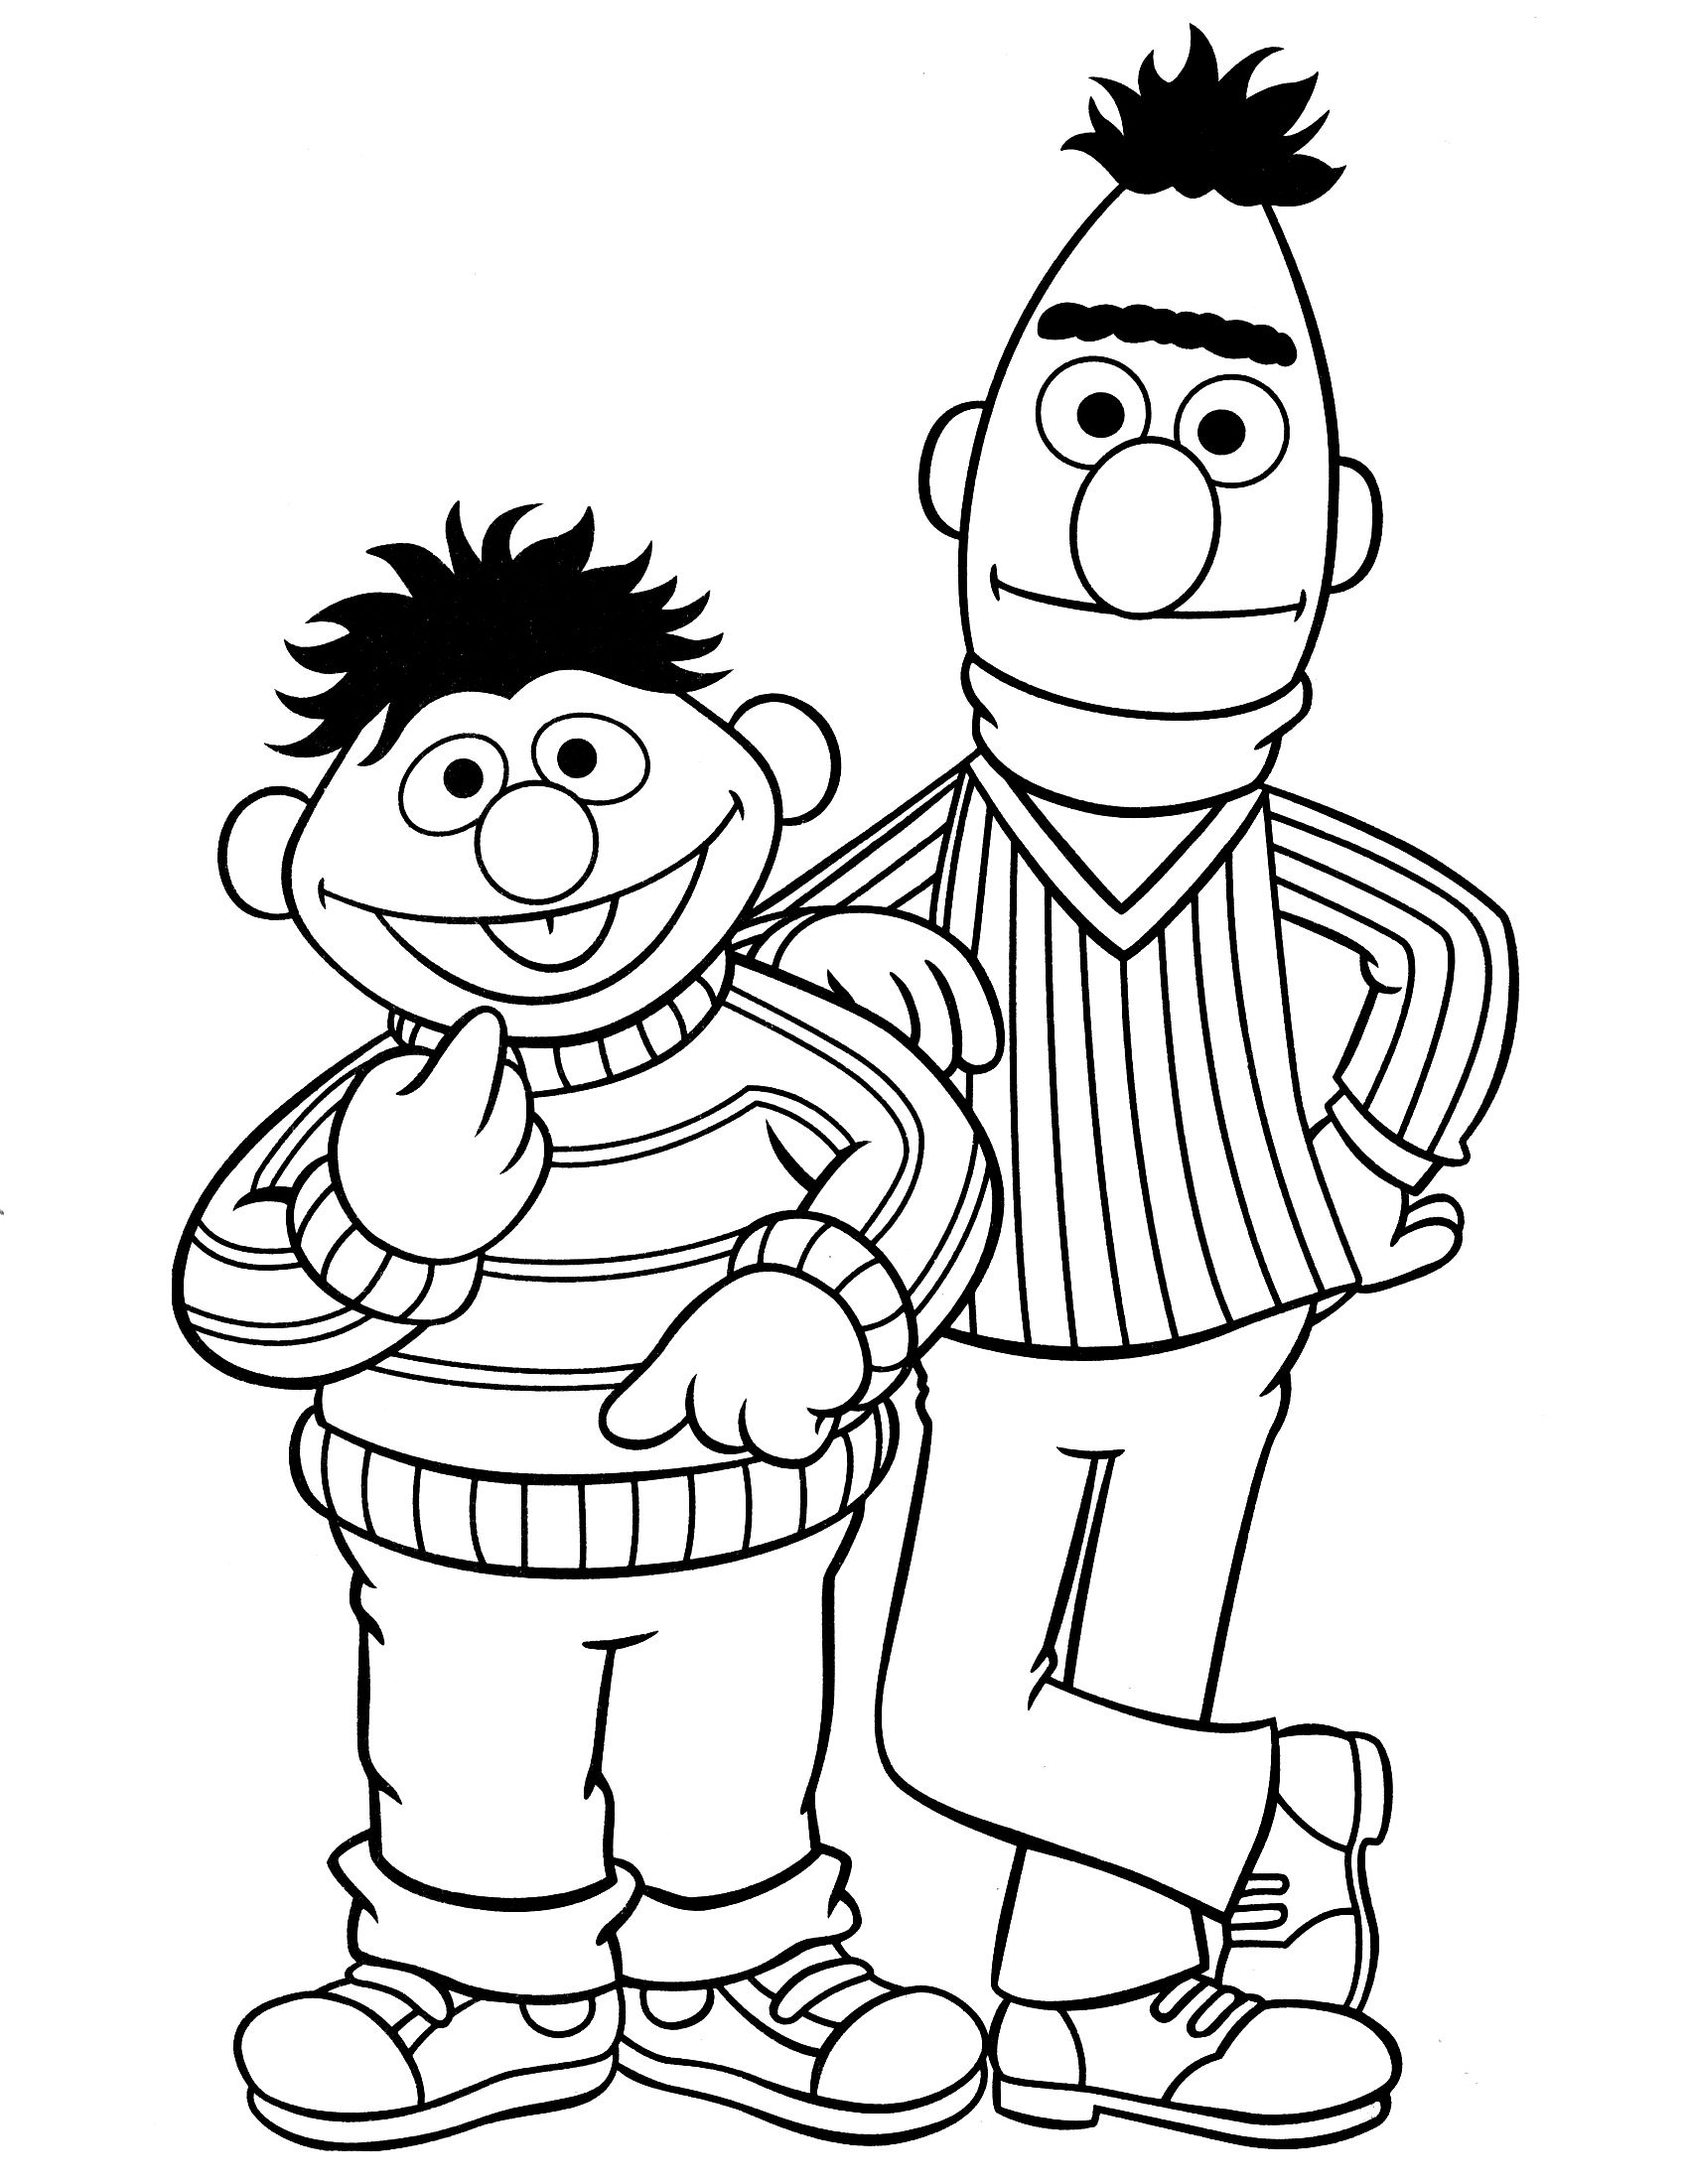 Superior Here We Provide Some Black And White Sesame Street Coloring Pages That Are  Ready To Print And Color. Description From Coloringpedia.com.